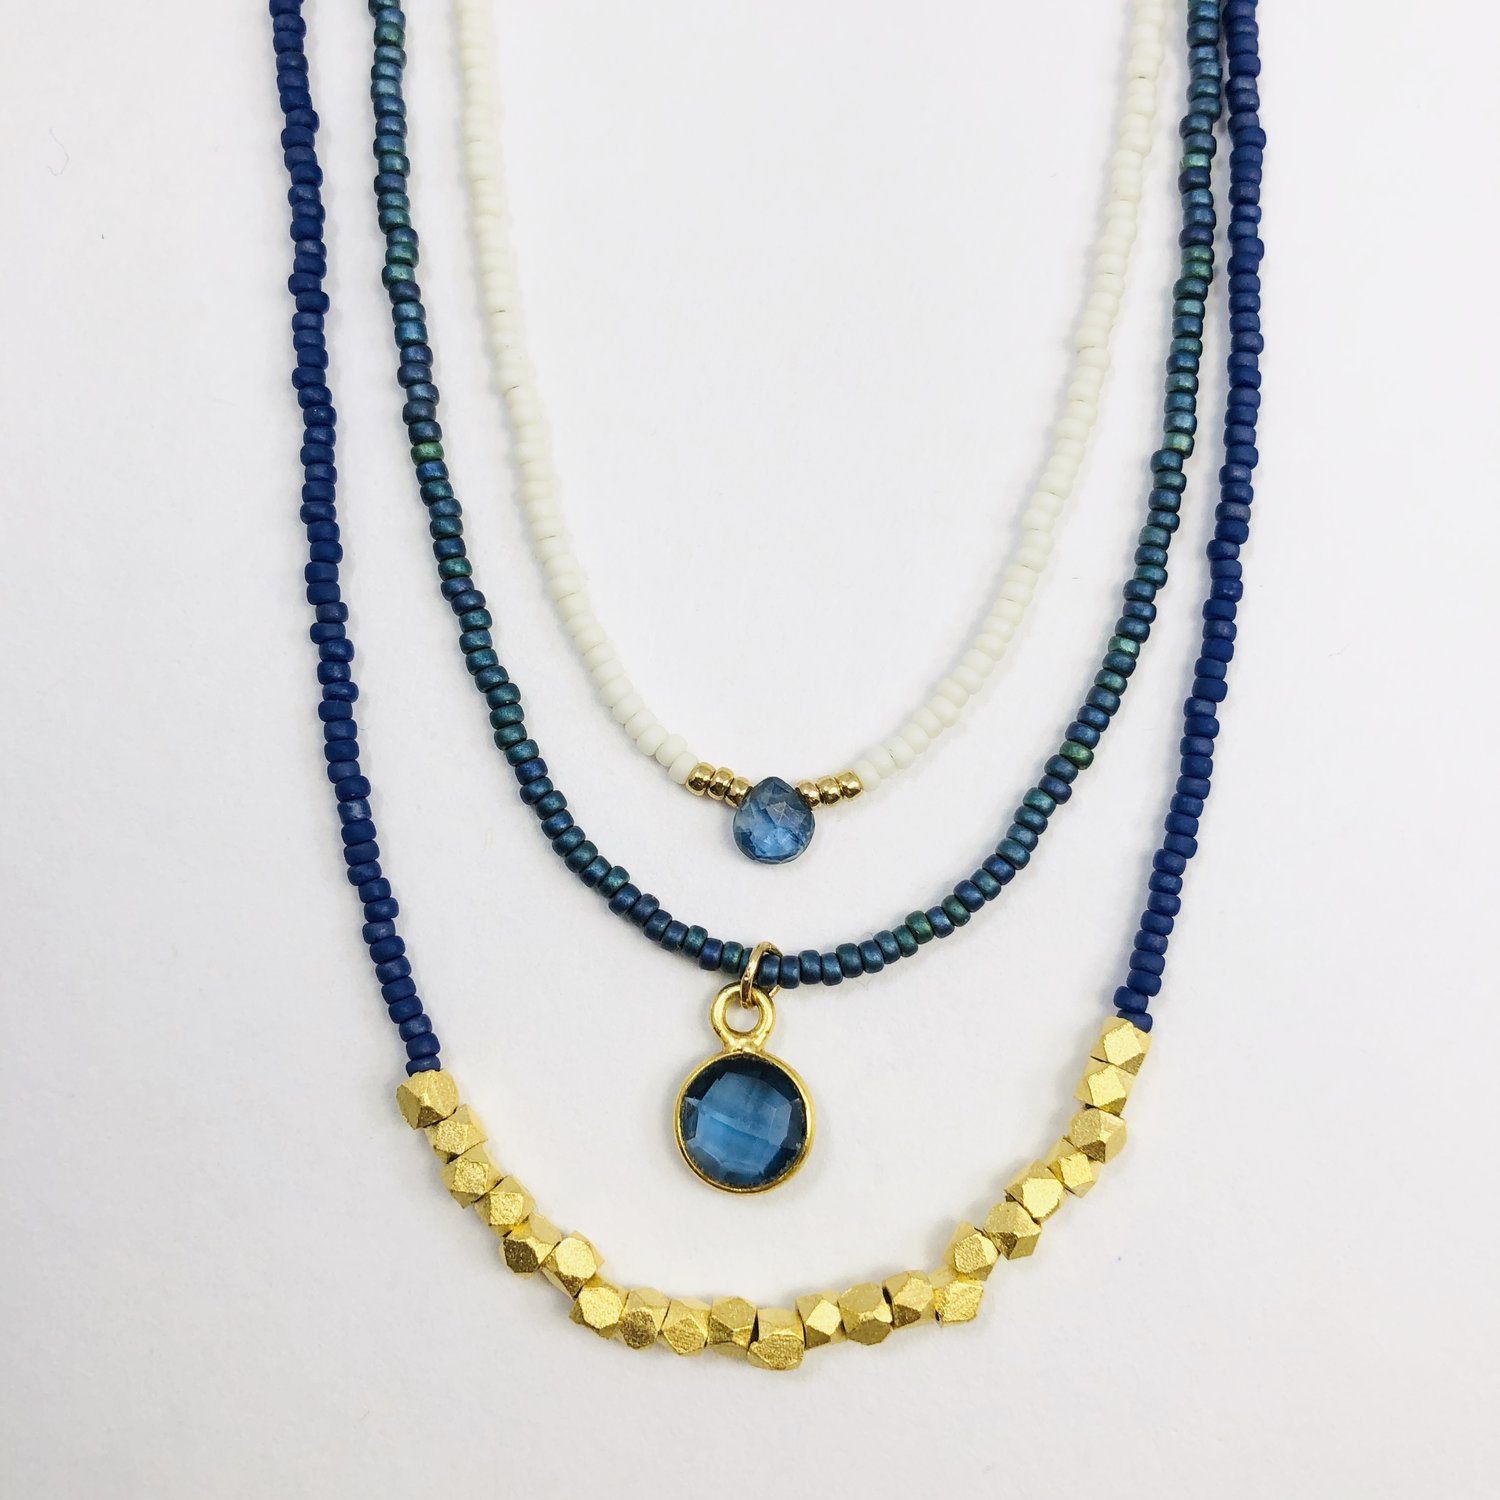 ece90132b Qi: Deep Blue Chakra Triple Beaded Necklace Set - One with small ...